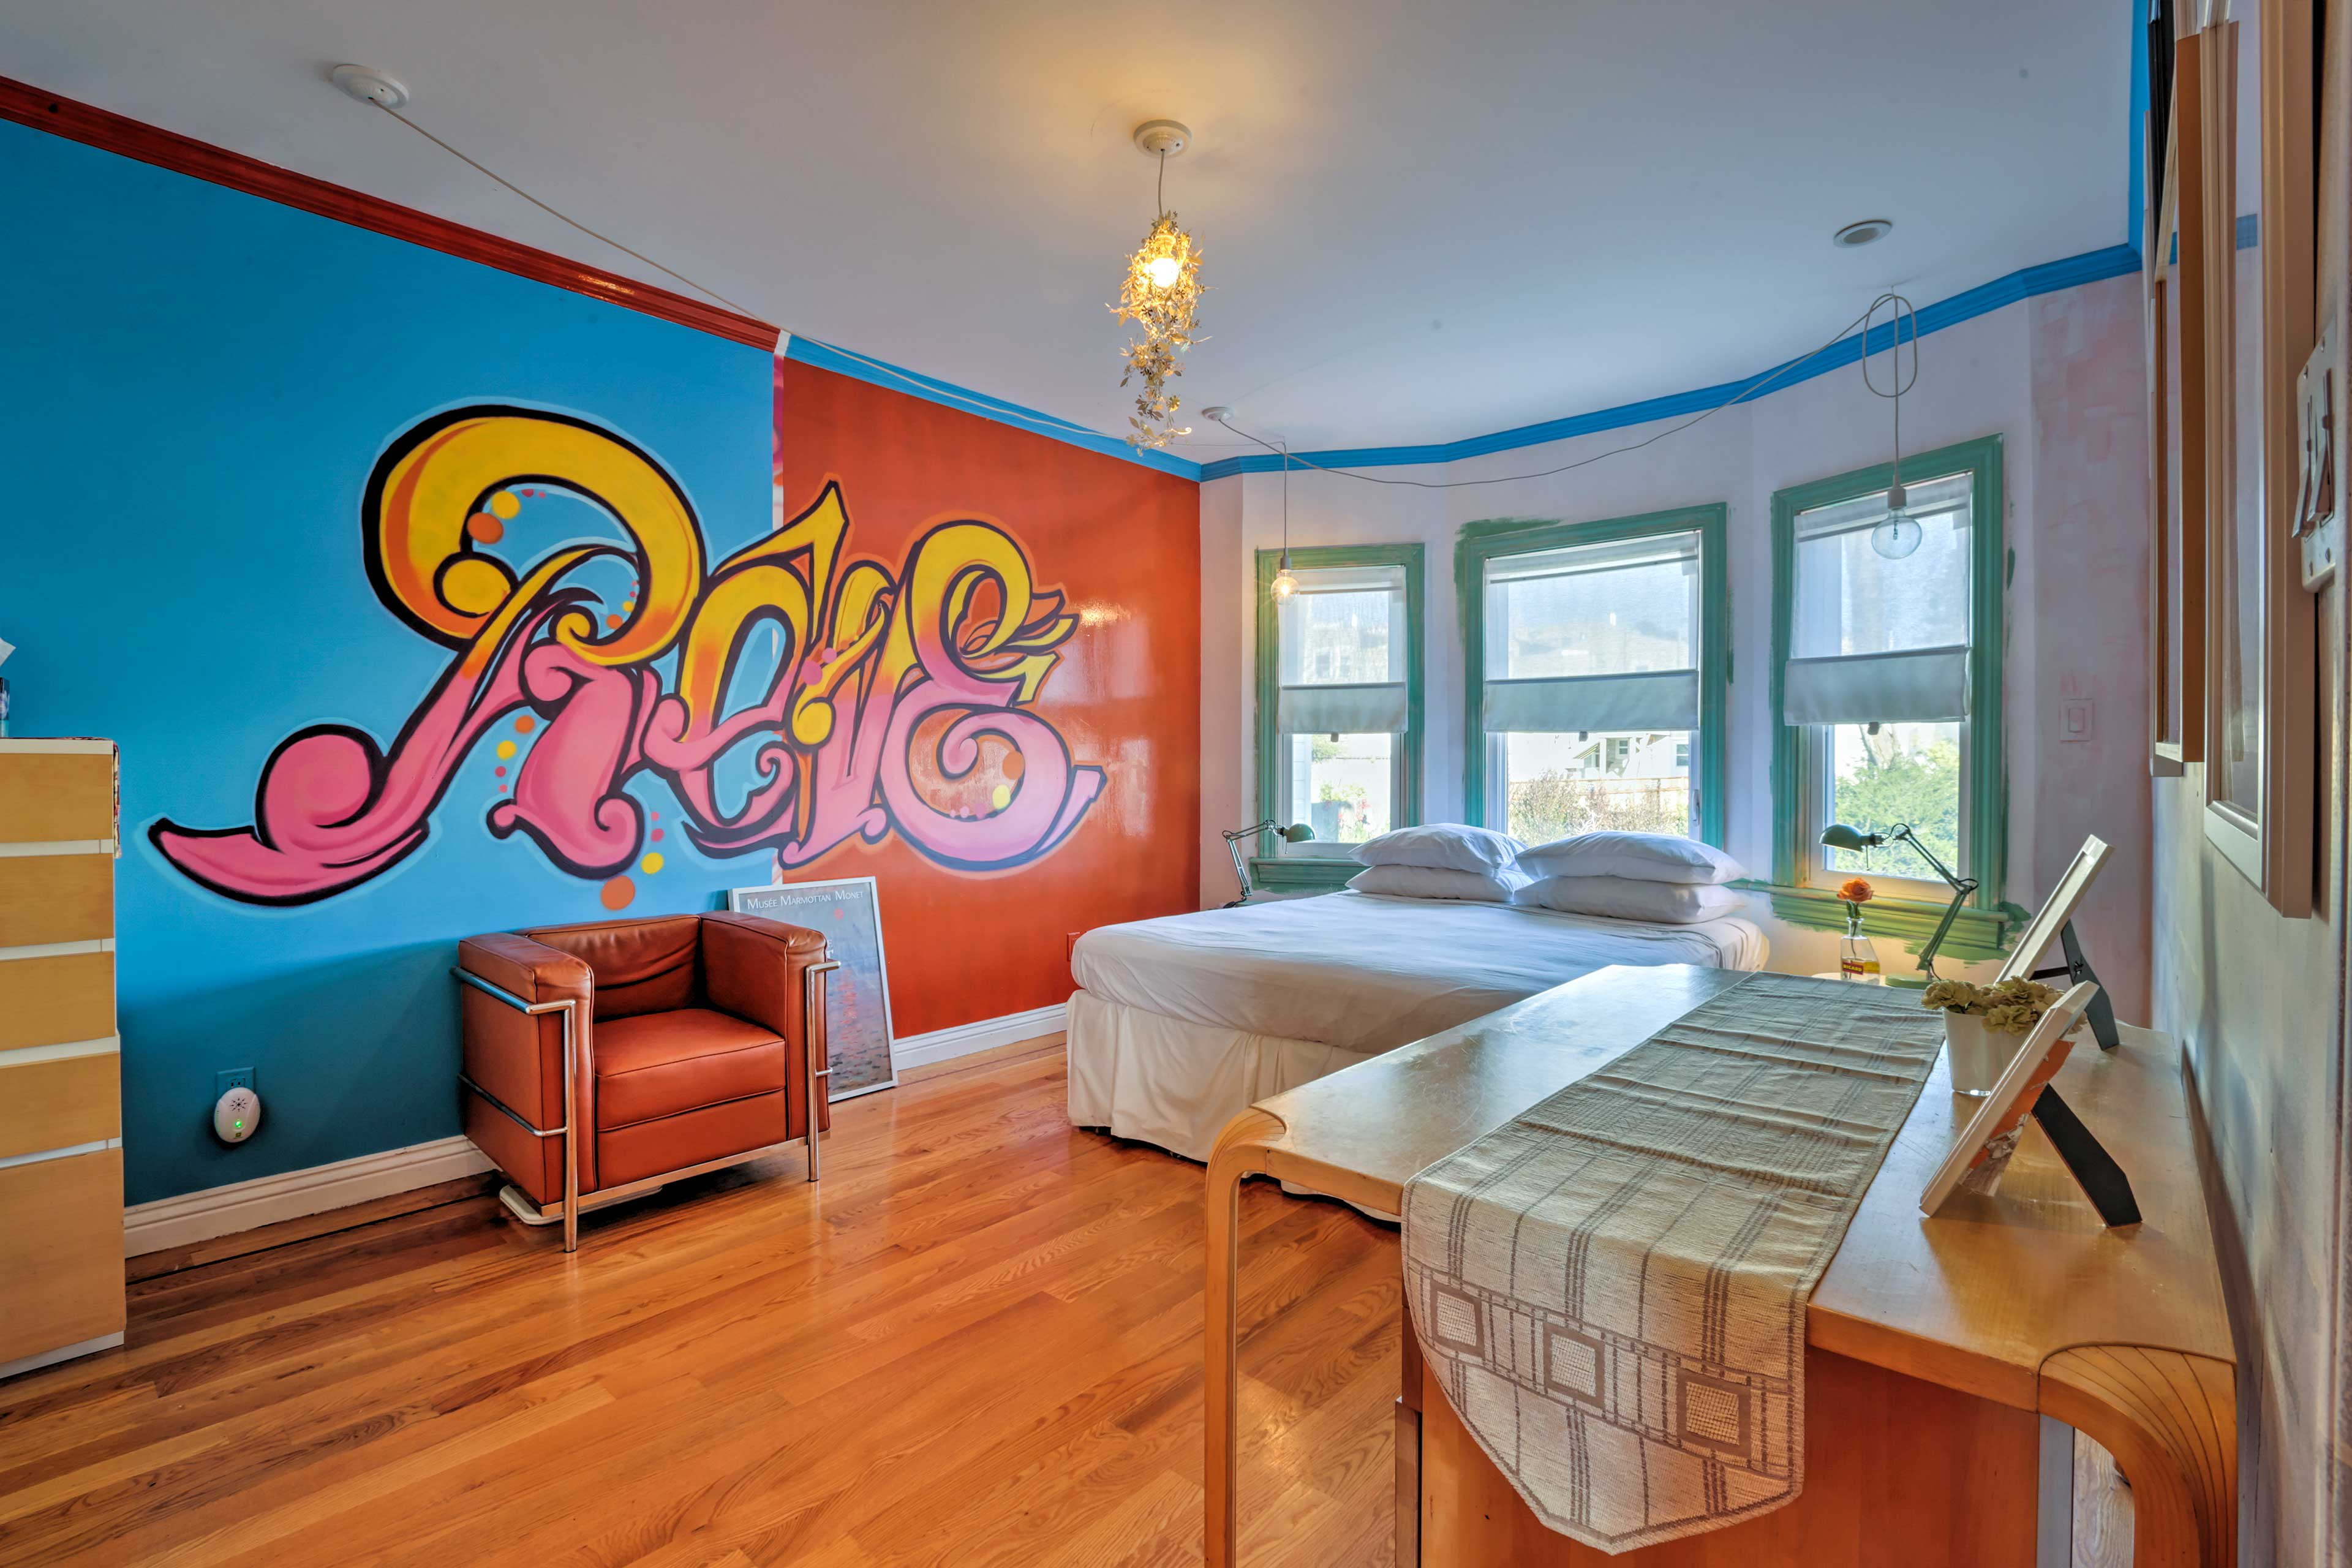 Reve is painted across the wall of the first bedroom, the French word for dream.